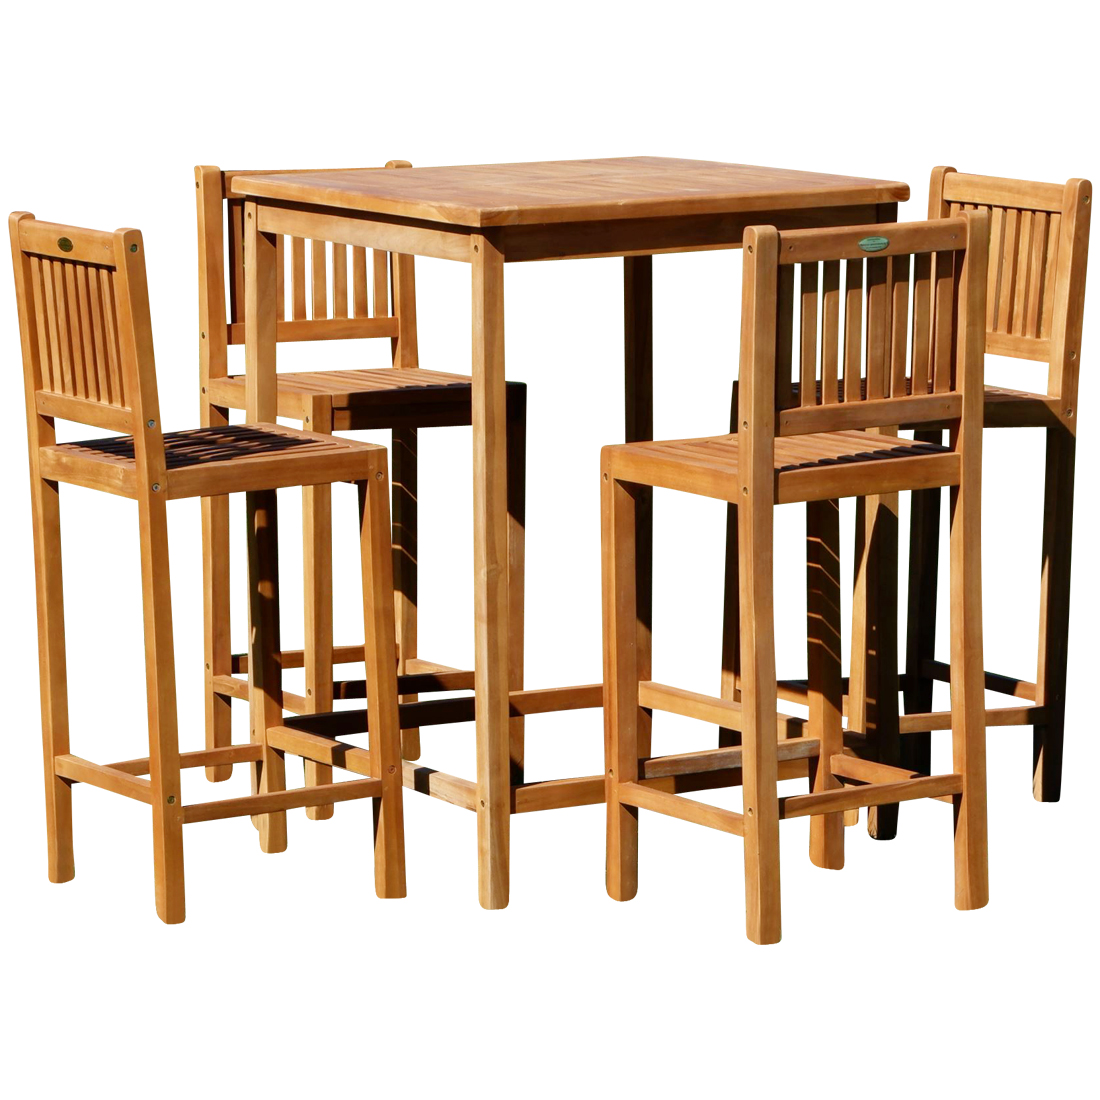 xl bar set teak bartisch bistrotisch stehtisch 80x80cm mit 4x barhocker holz modell jav bima. Black Bedroom Furniture Sets. Home Design Ideas